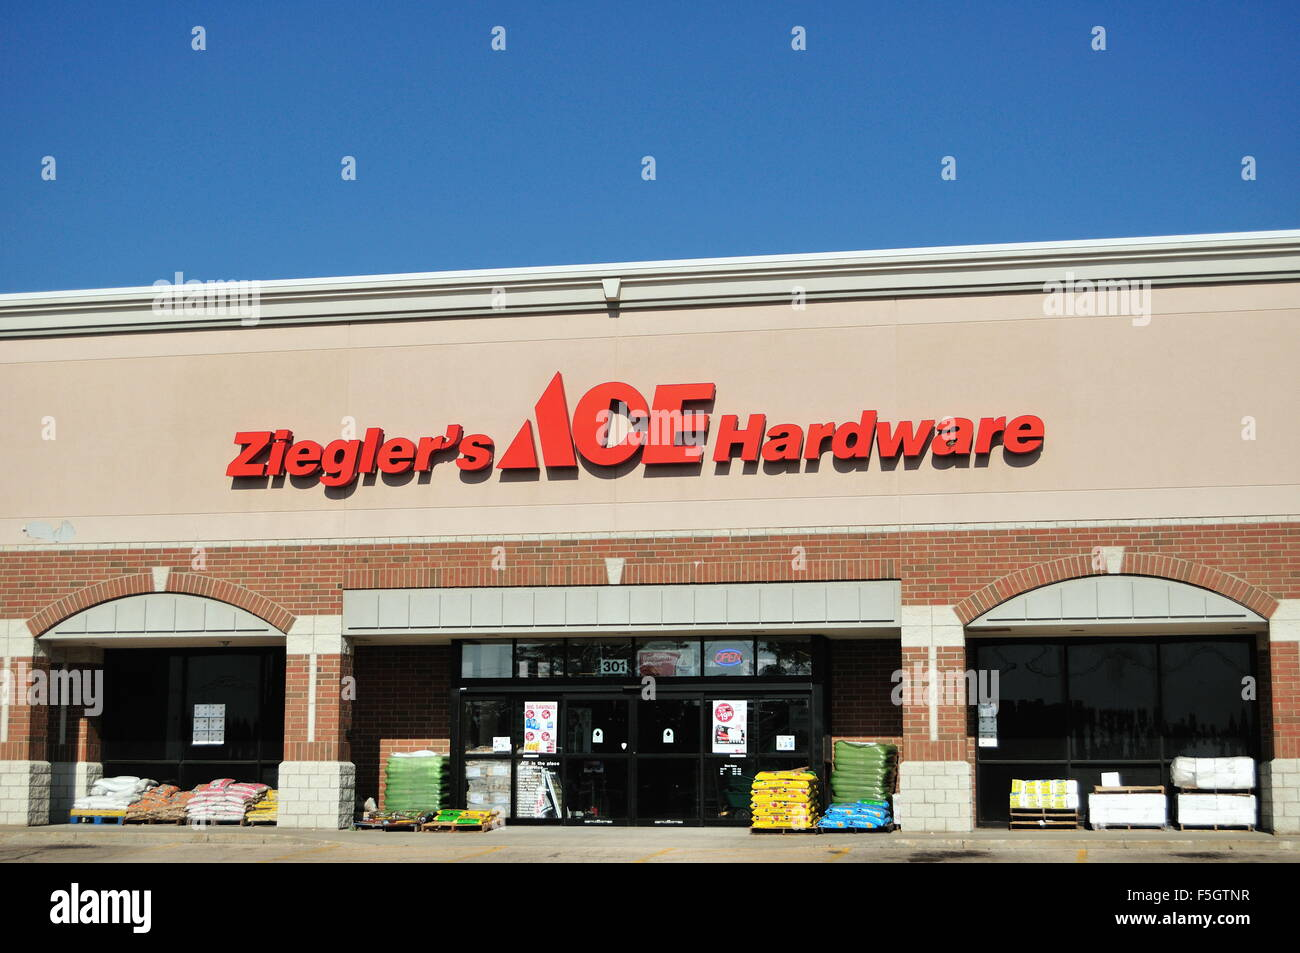 An Ace Hardware franchise store in a strip mall in South Elgin, Illinois, USA. - Stock Image